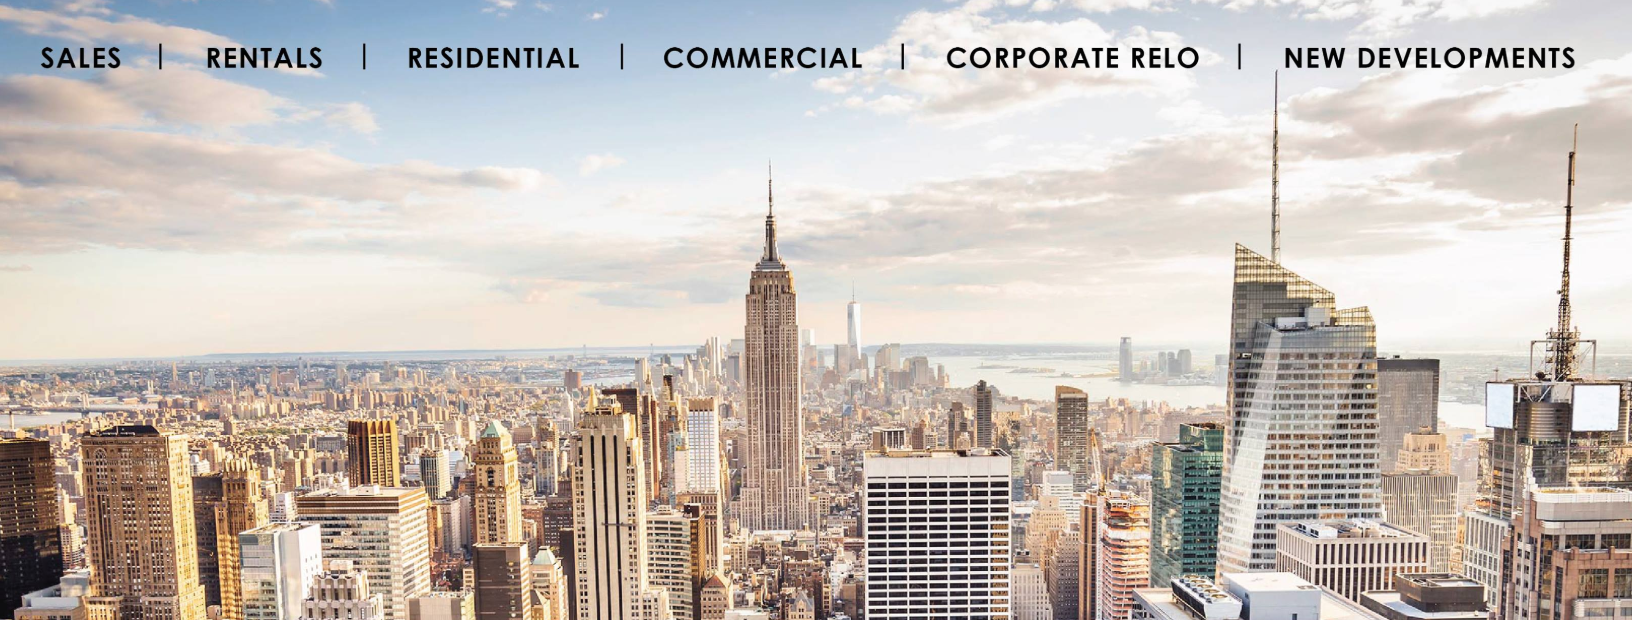 BOND New York Real Estate - real estate cover photos - tips from the pros